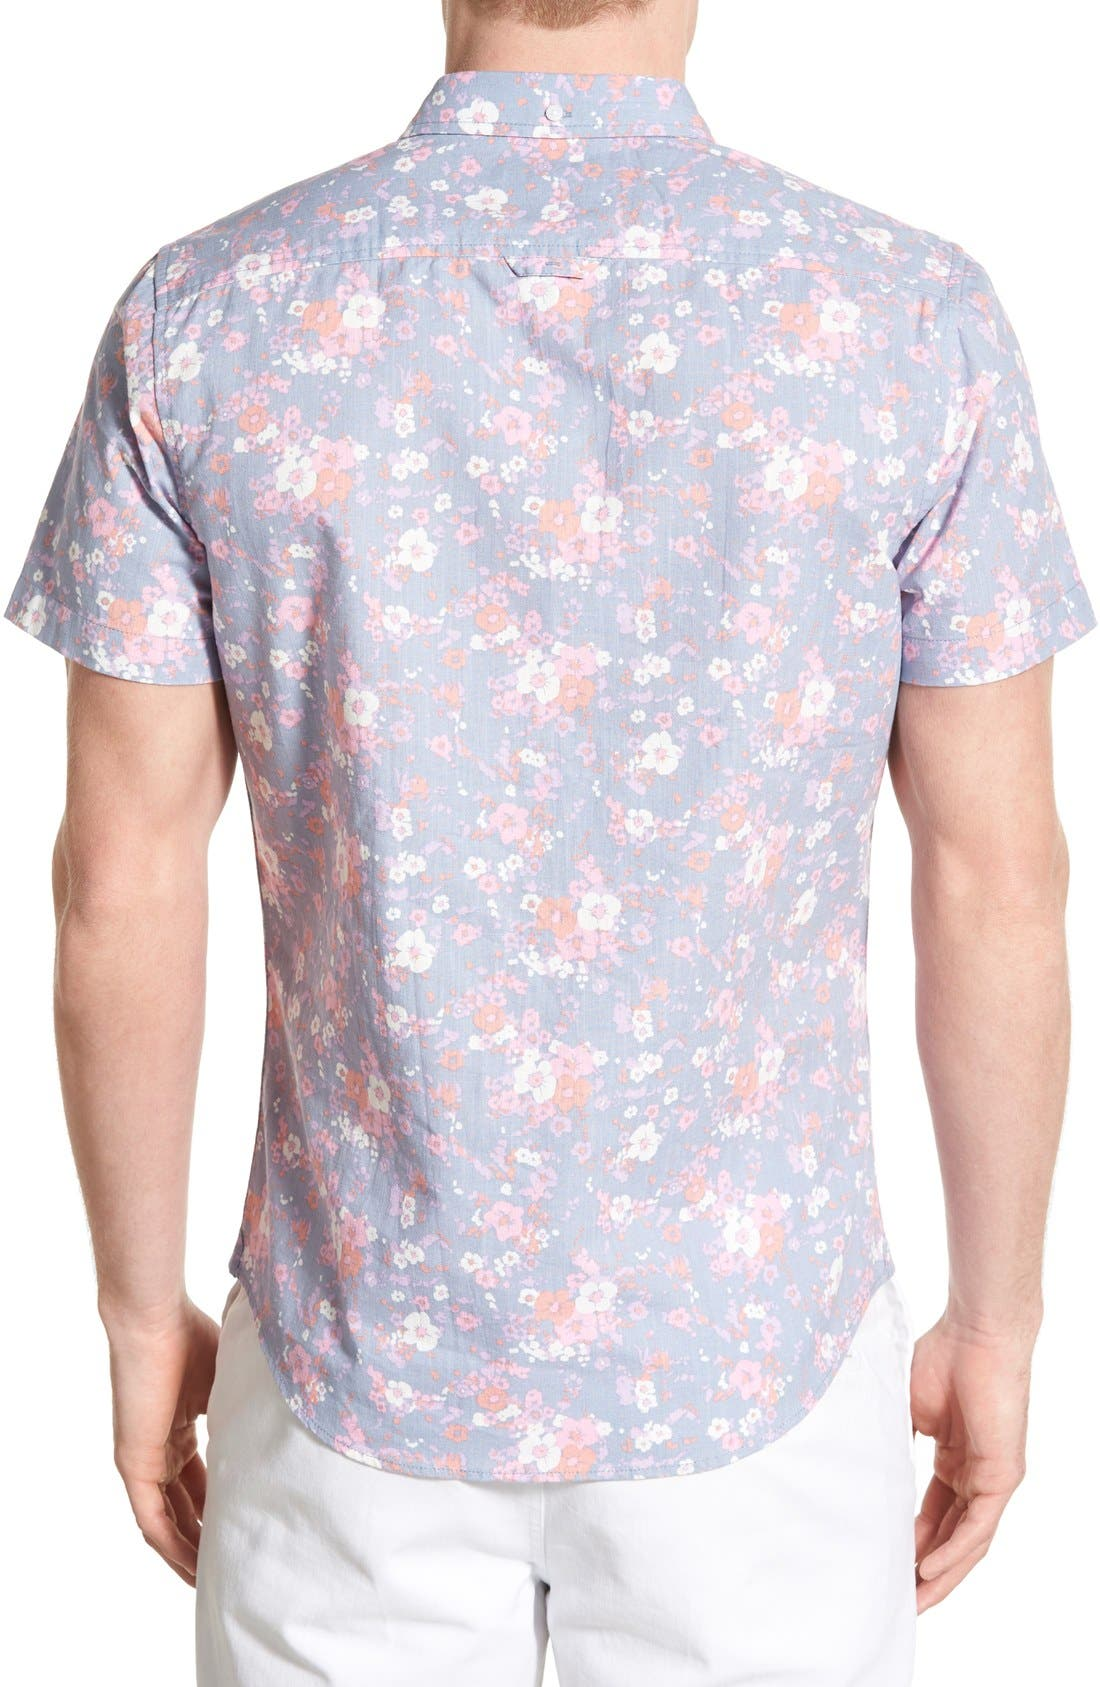 Alternate Image 2  - 1901 'Gifford' Trim Fit Short Sleeve Floral Print Chambray Shirt